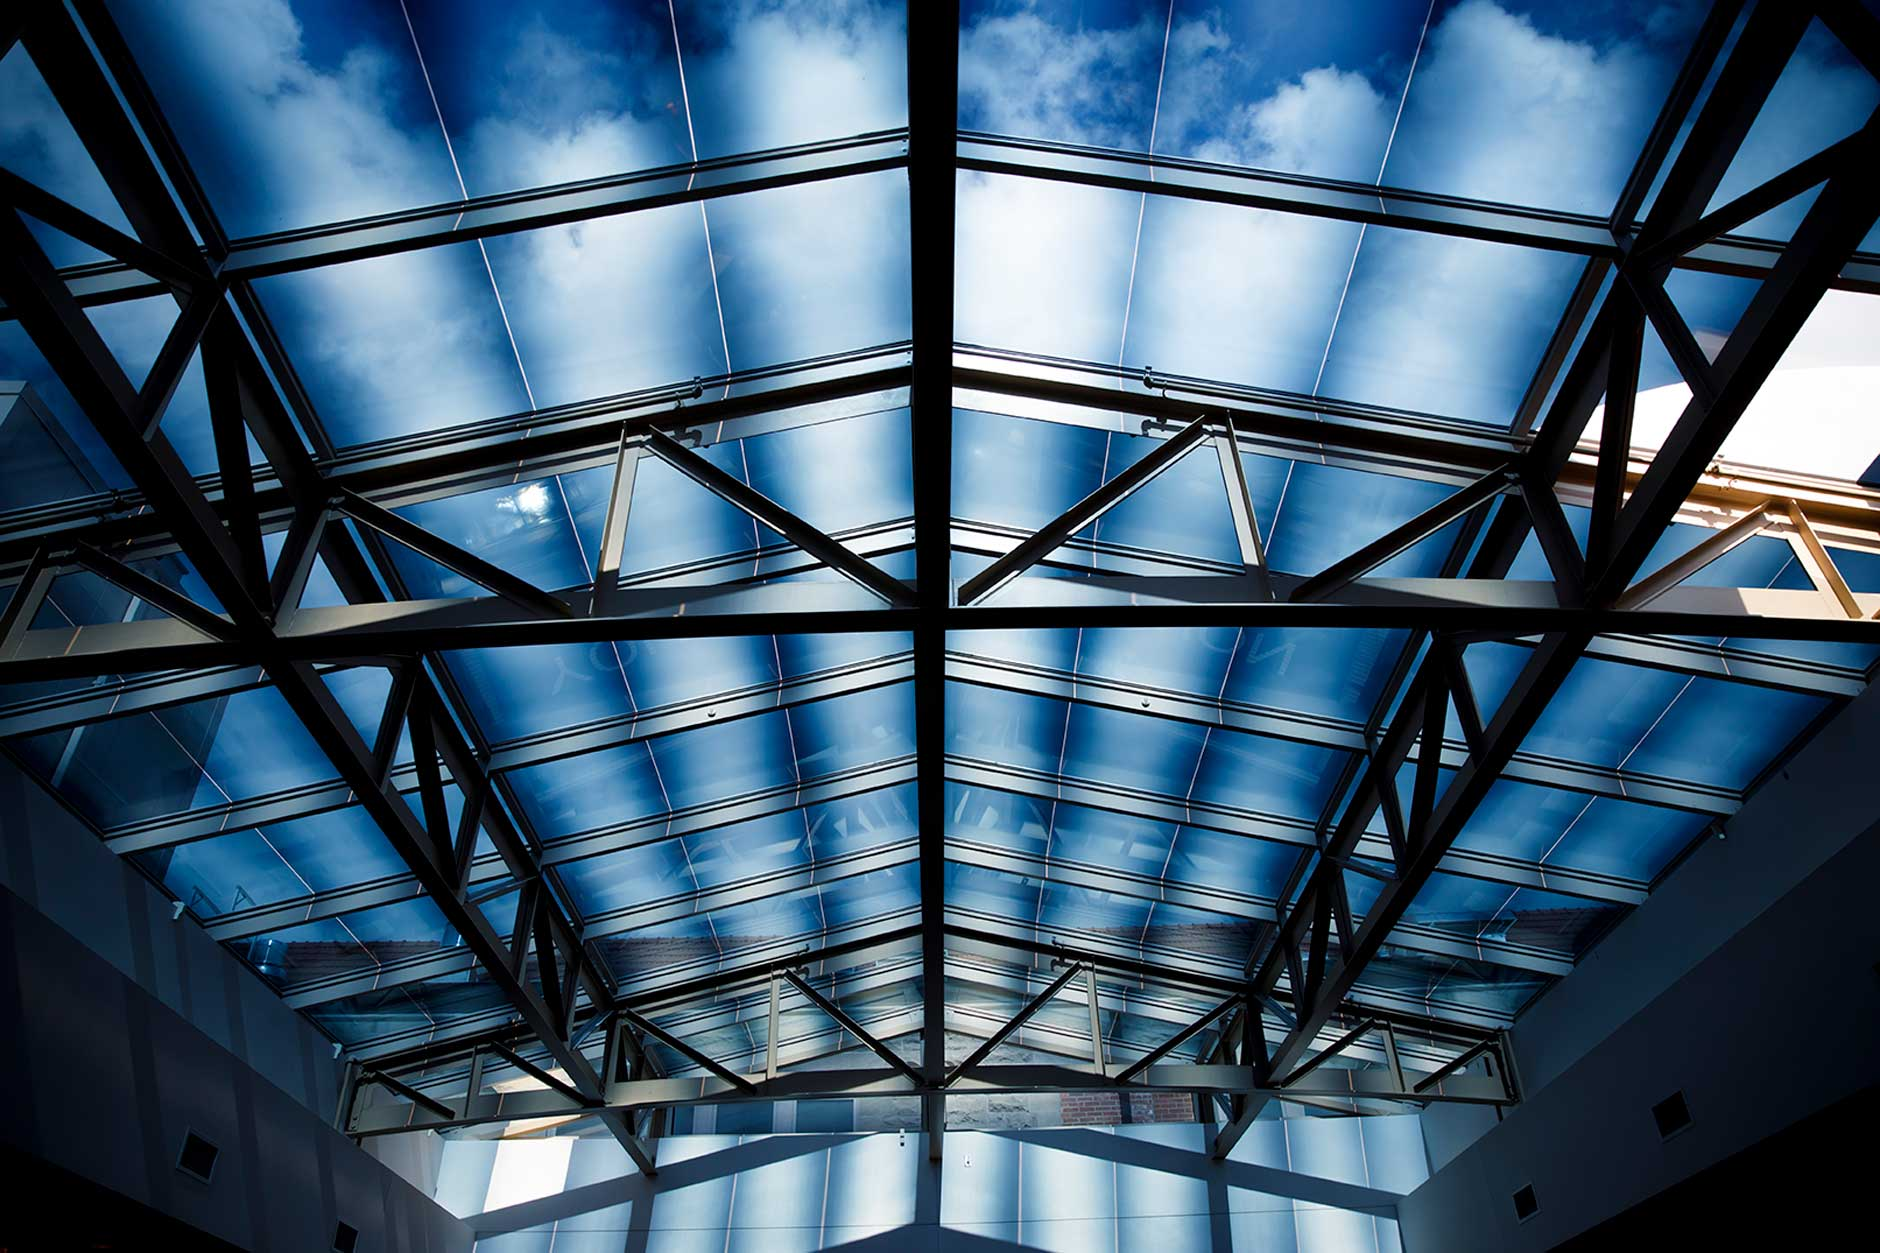 Clouds float over the atrium above Franklin Hall during the Game Development Camp at the Indiana University Media School on Friday, June 22, 2018. (James Brosher/IU Communications)